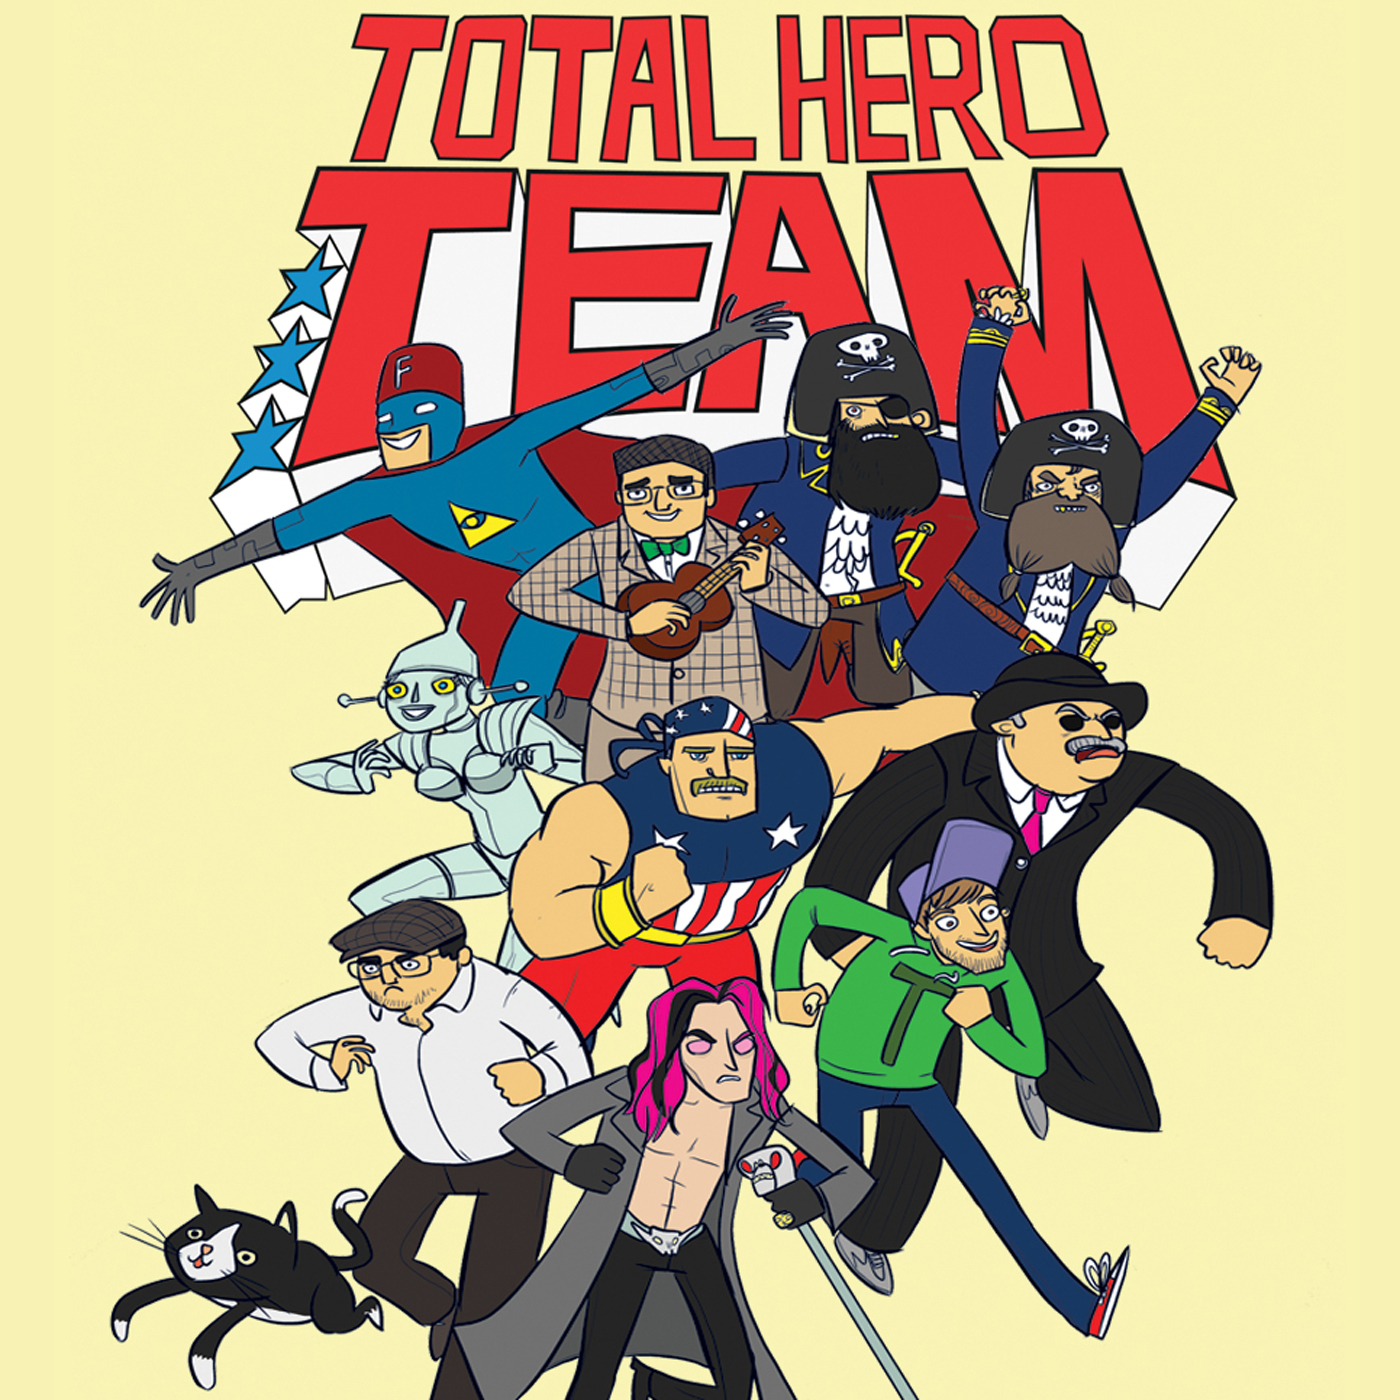 Total Hero Team